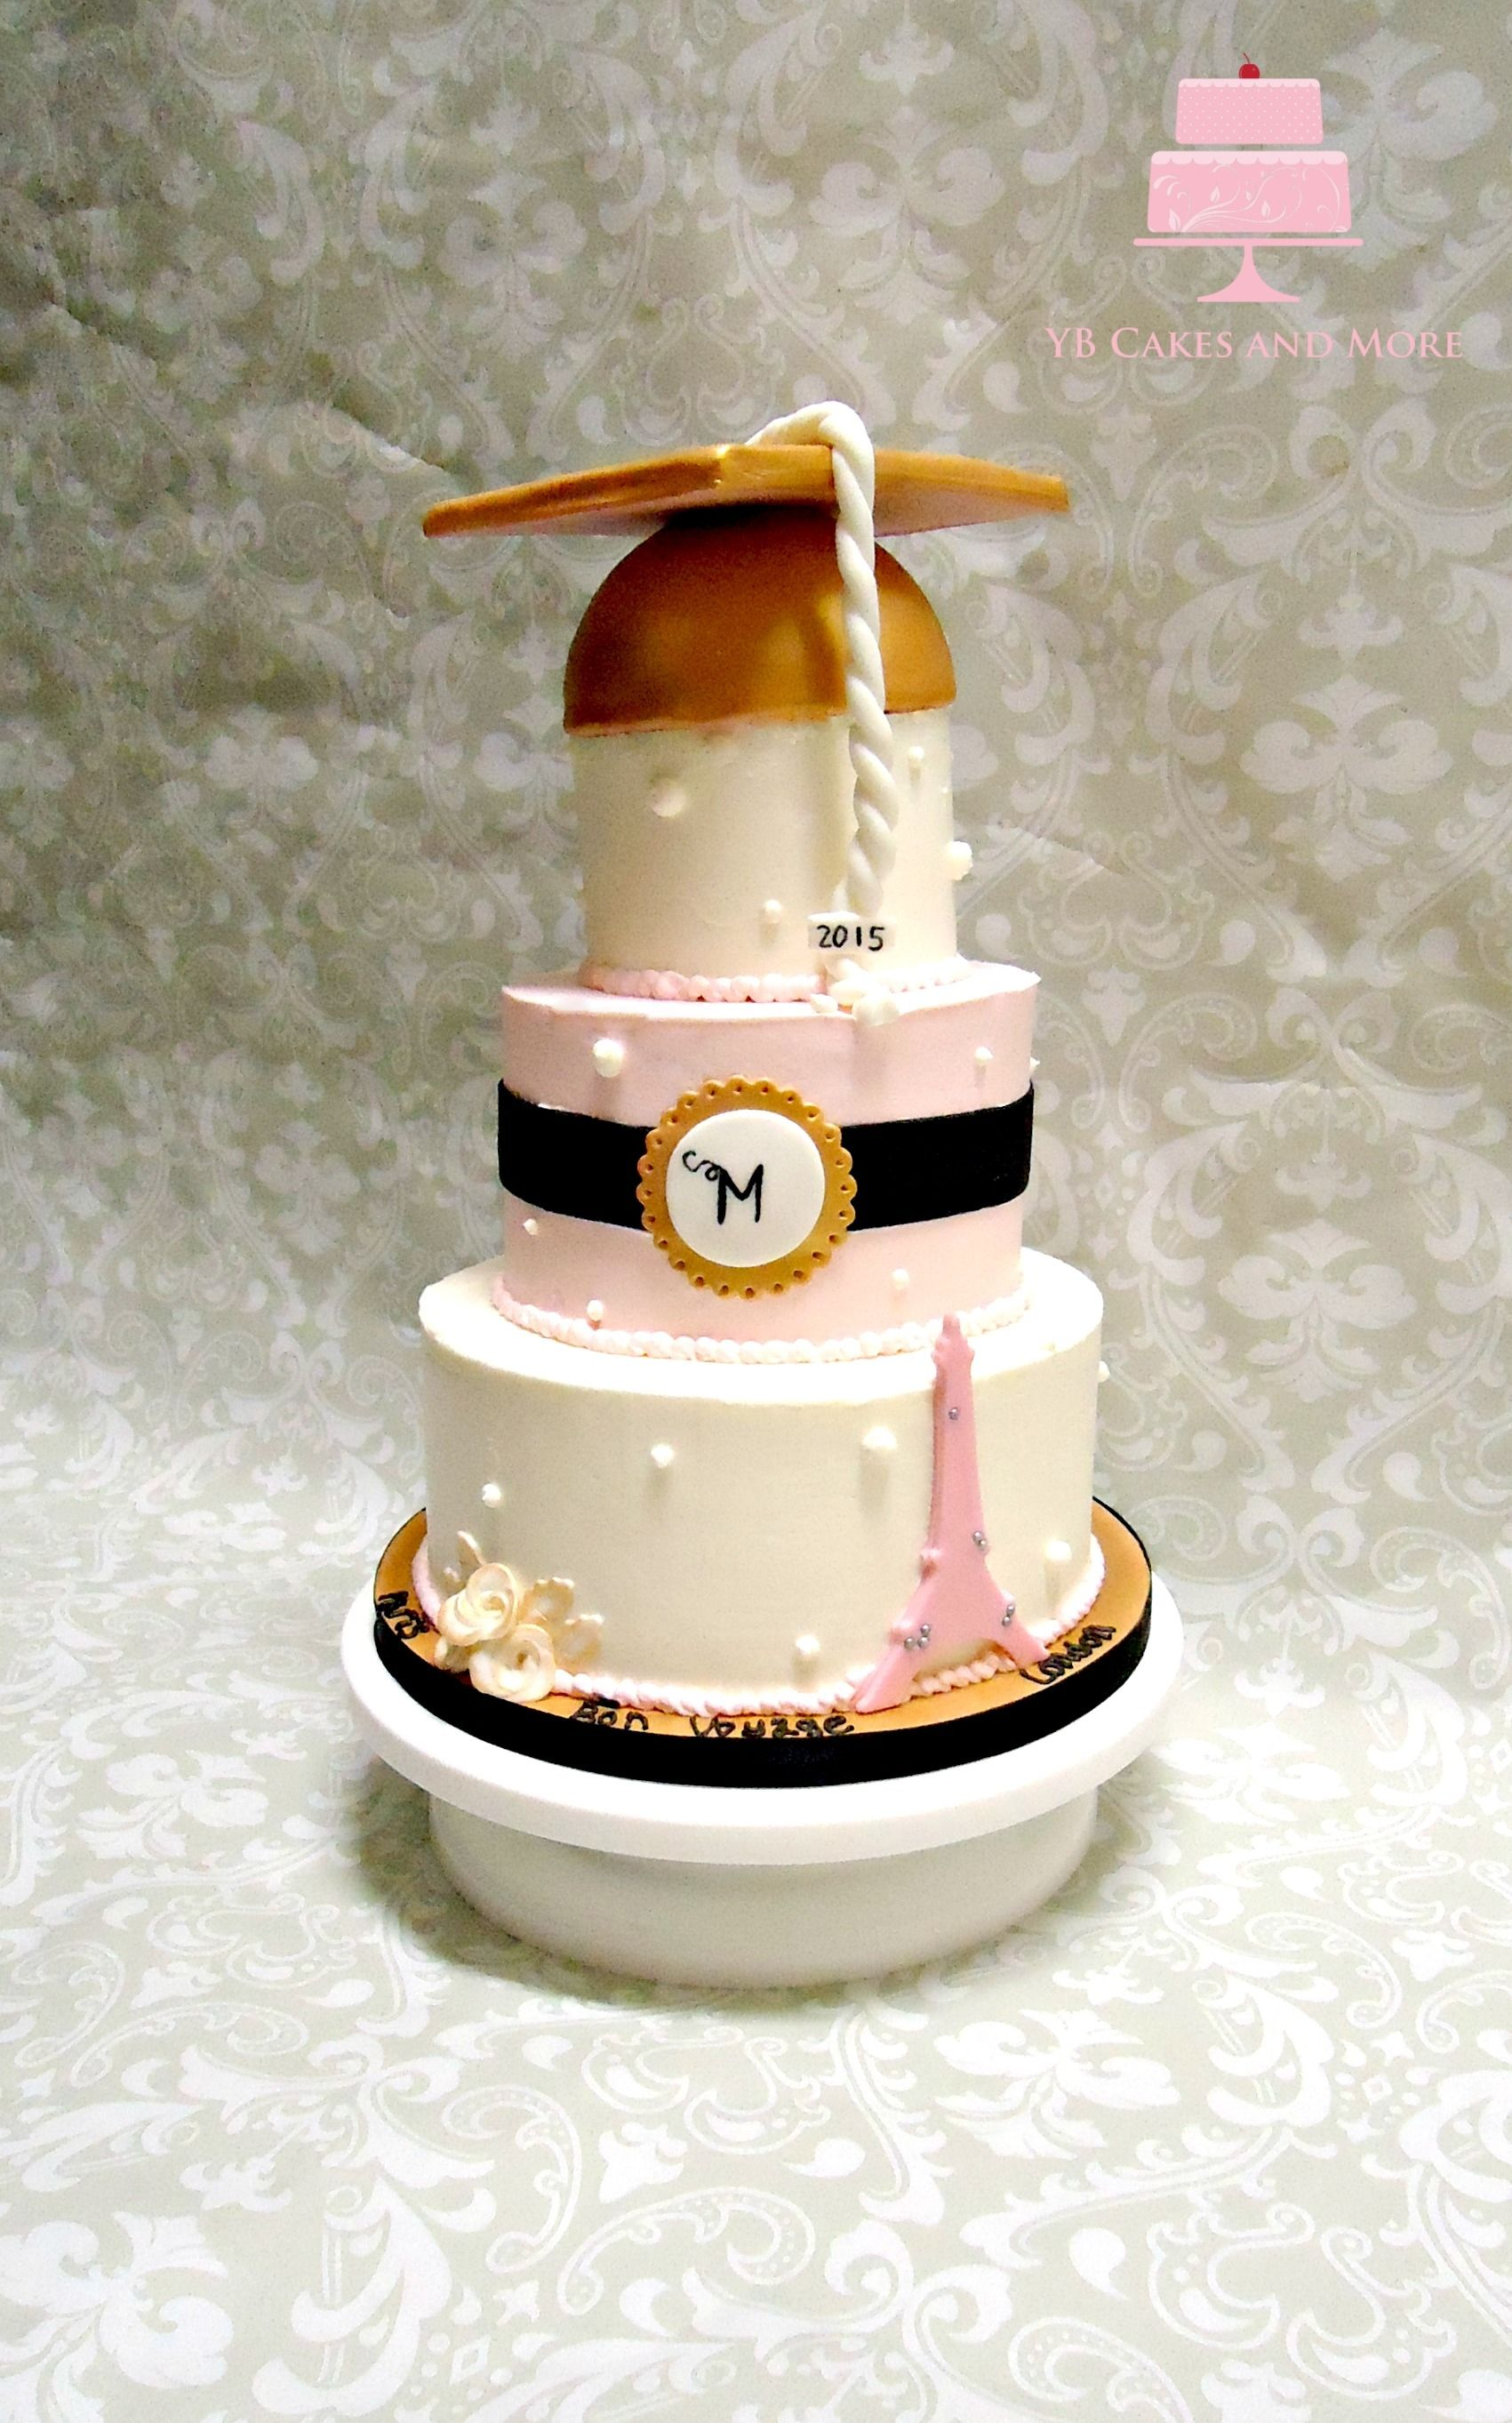 This is a 3 tier graduation cake with a Paris theme. buttercream with fondant appliques! Pink, gold, white and black make this cake so chic and slightly romantic. The roses were hand painted gold at the tips along with the rose leaves. By: YB Cakes and More